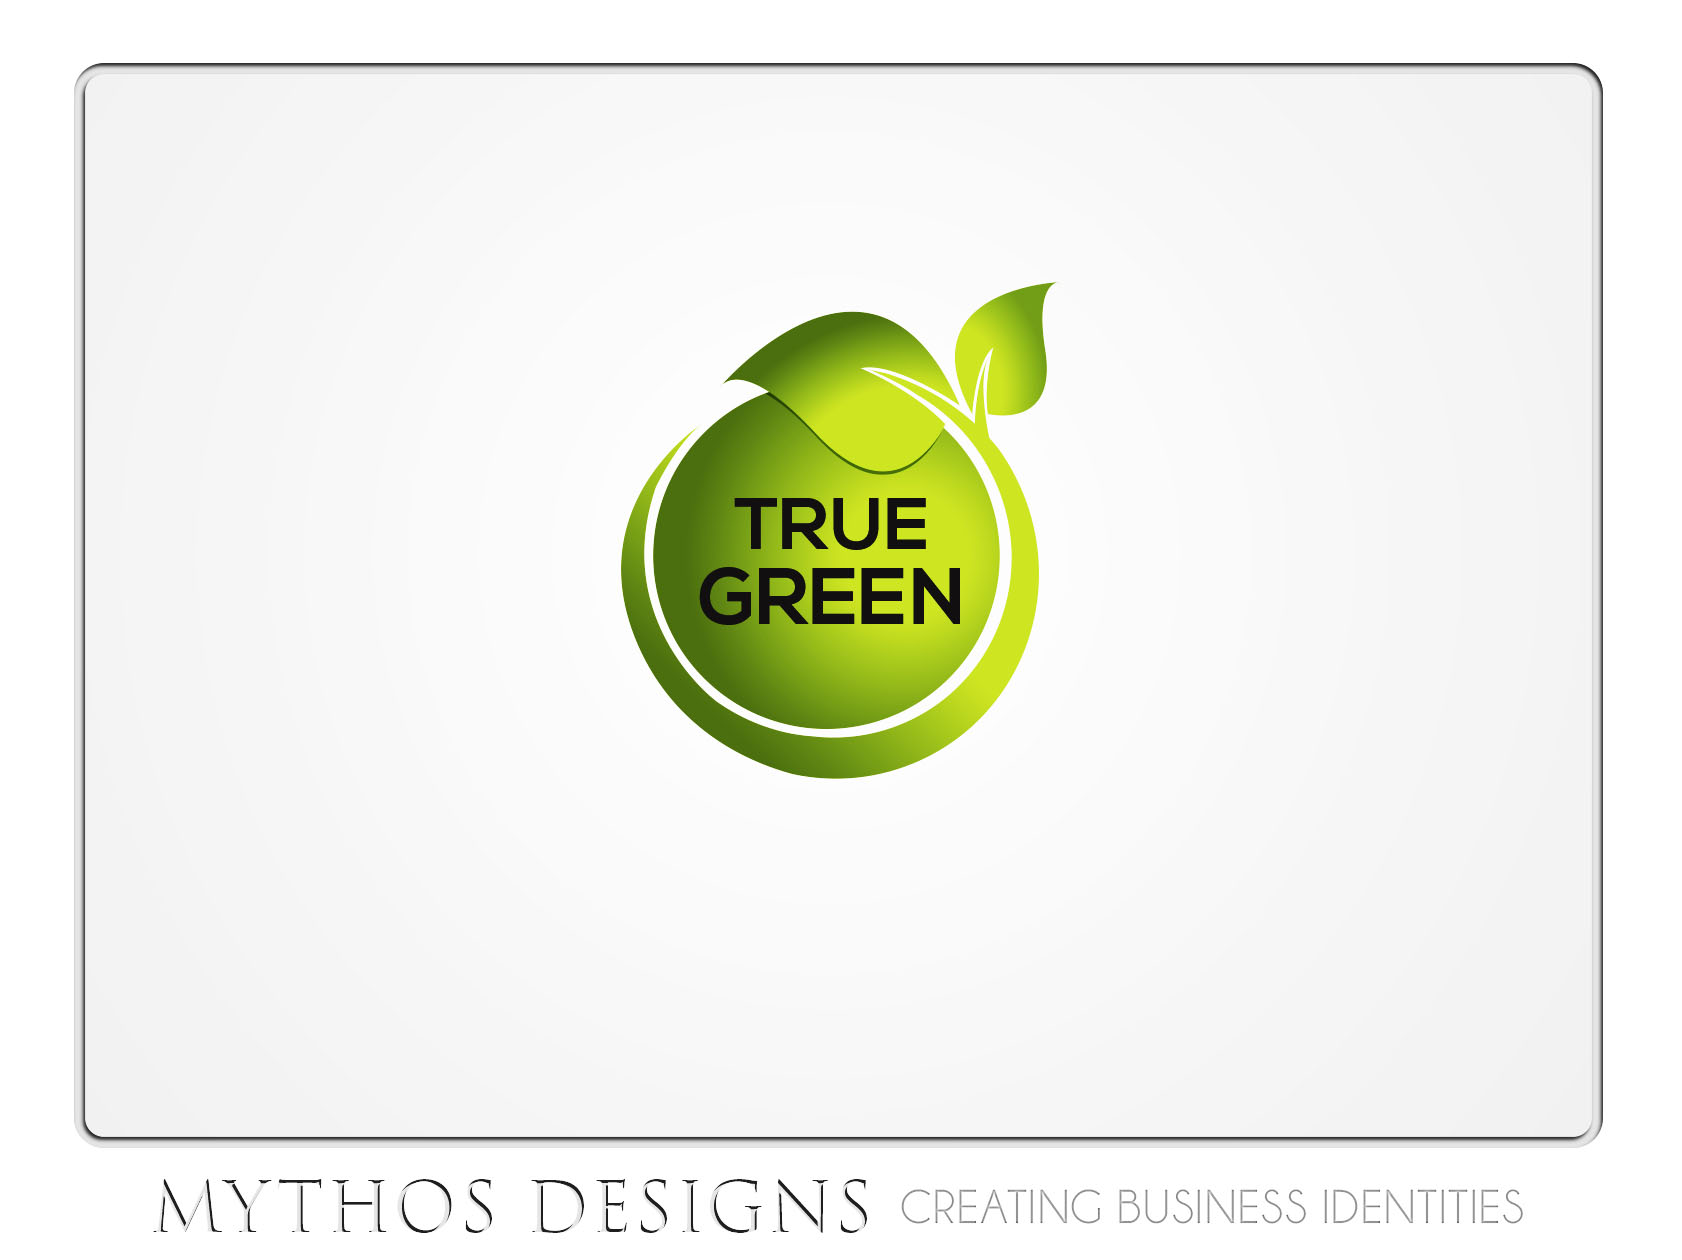 Logo Design by Mythos Designs - Entry No. 23 in the Logo Design Contest Fun Logo Design for TRUE GREEN.